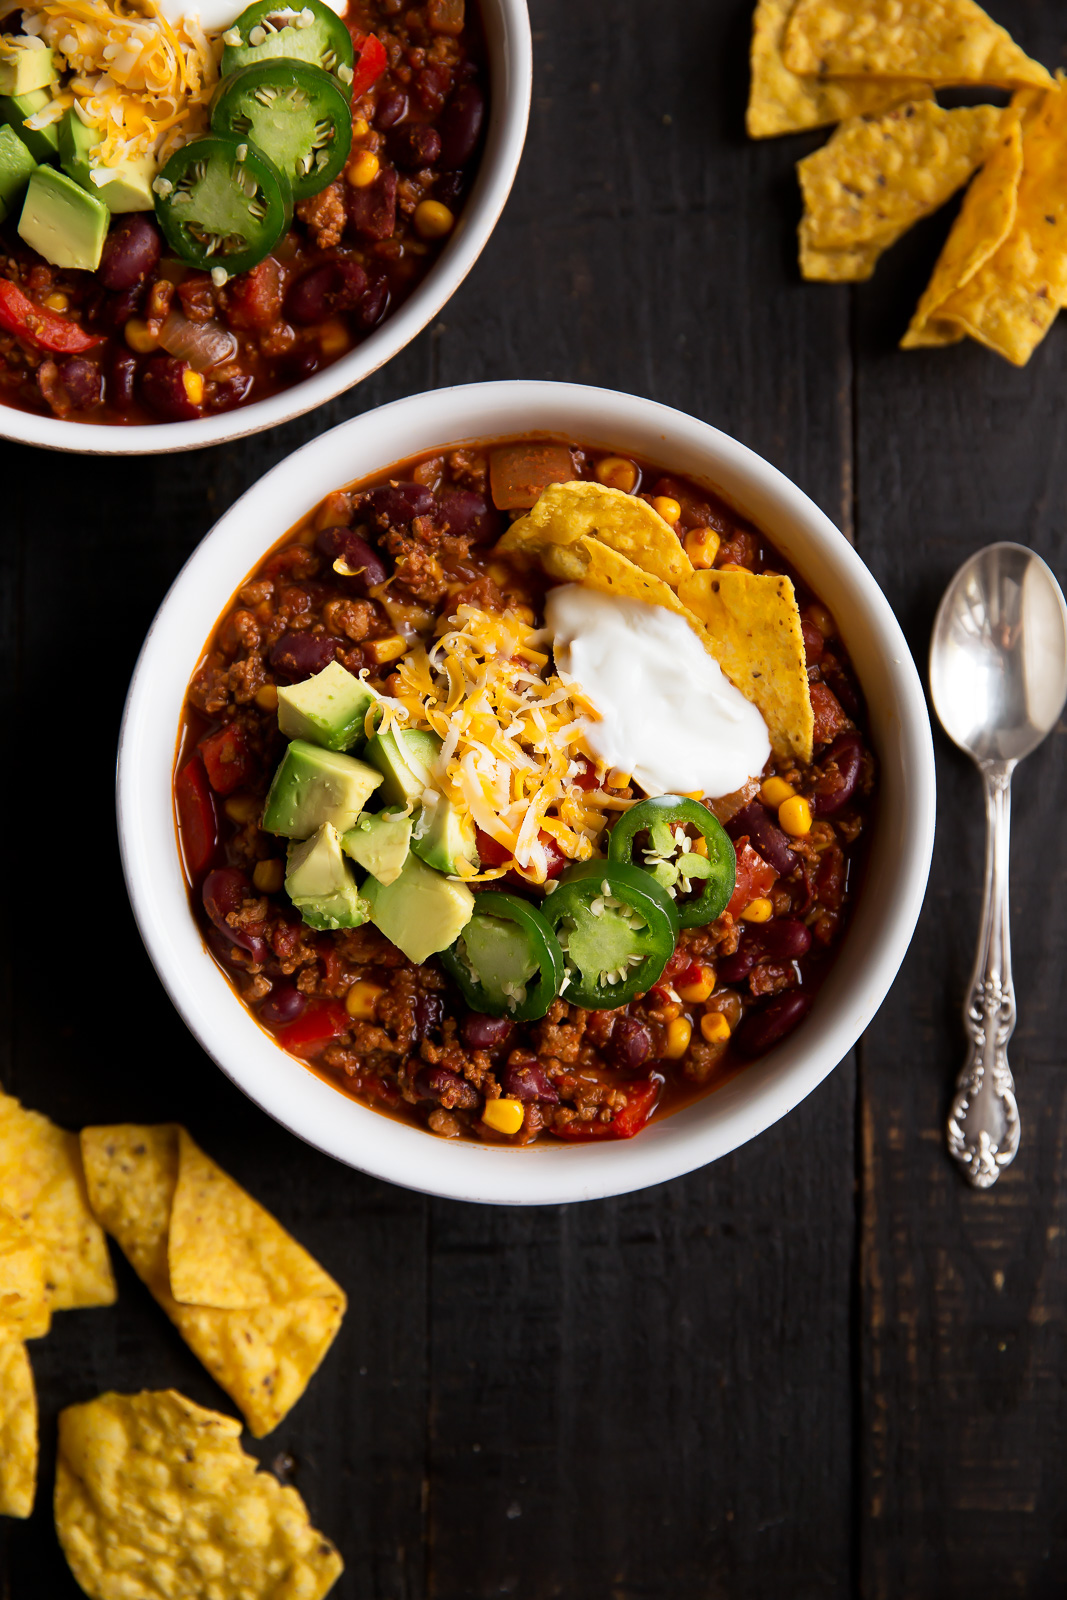 https://www.ambitiouskitchen.com/2015/11/seriously-the-best-healthy-turkey-chili/